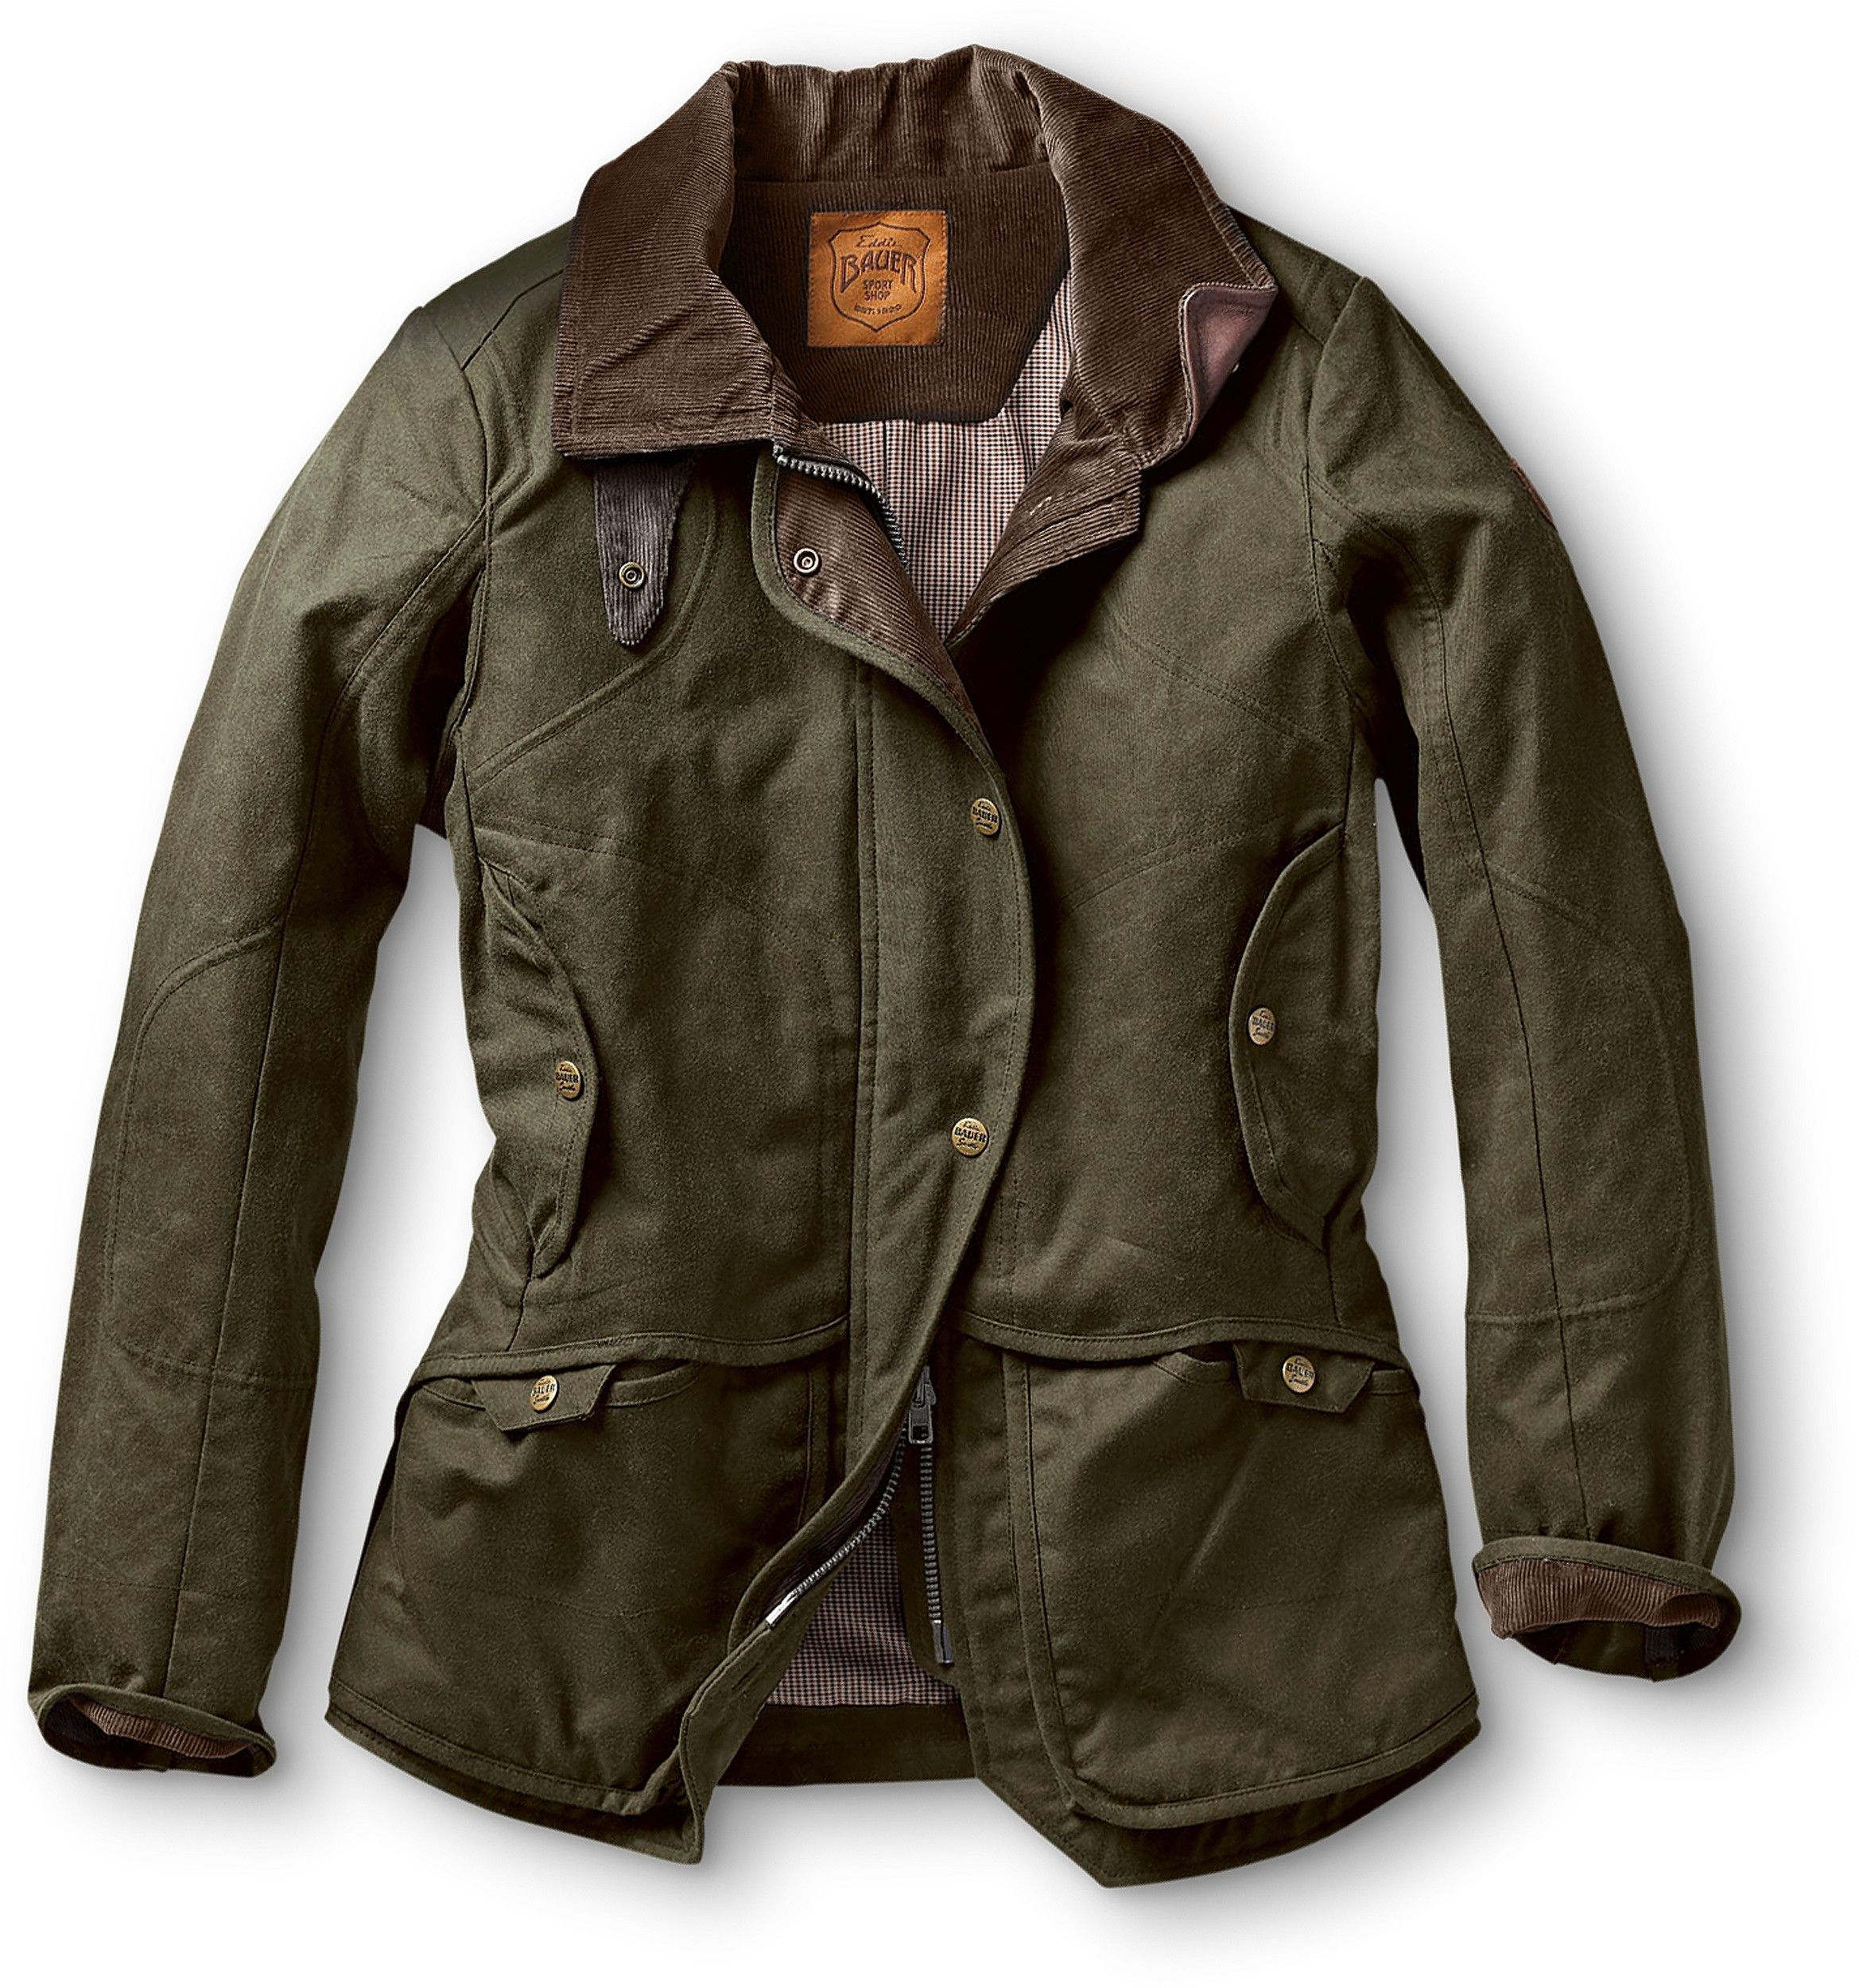 Kettle Mountain StormShed Jacket A classic field jacket